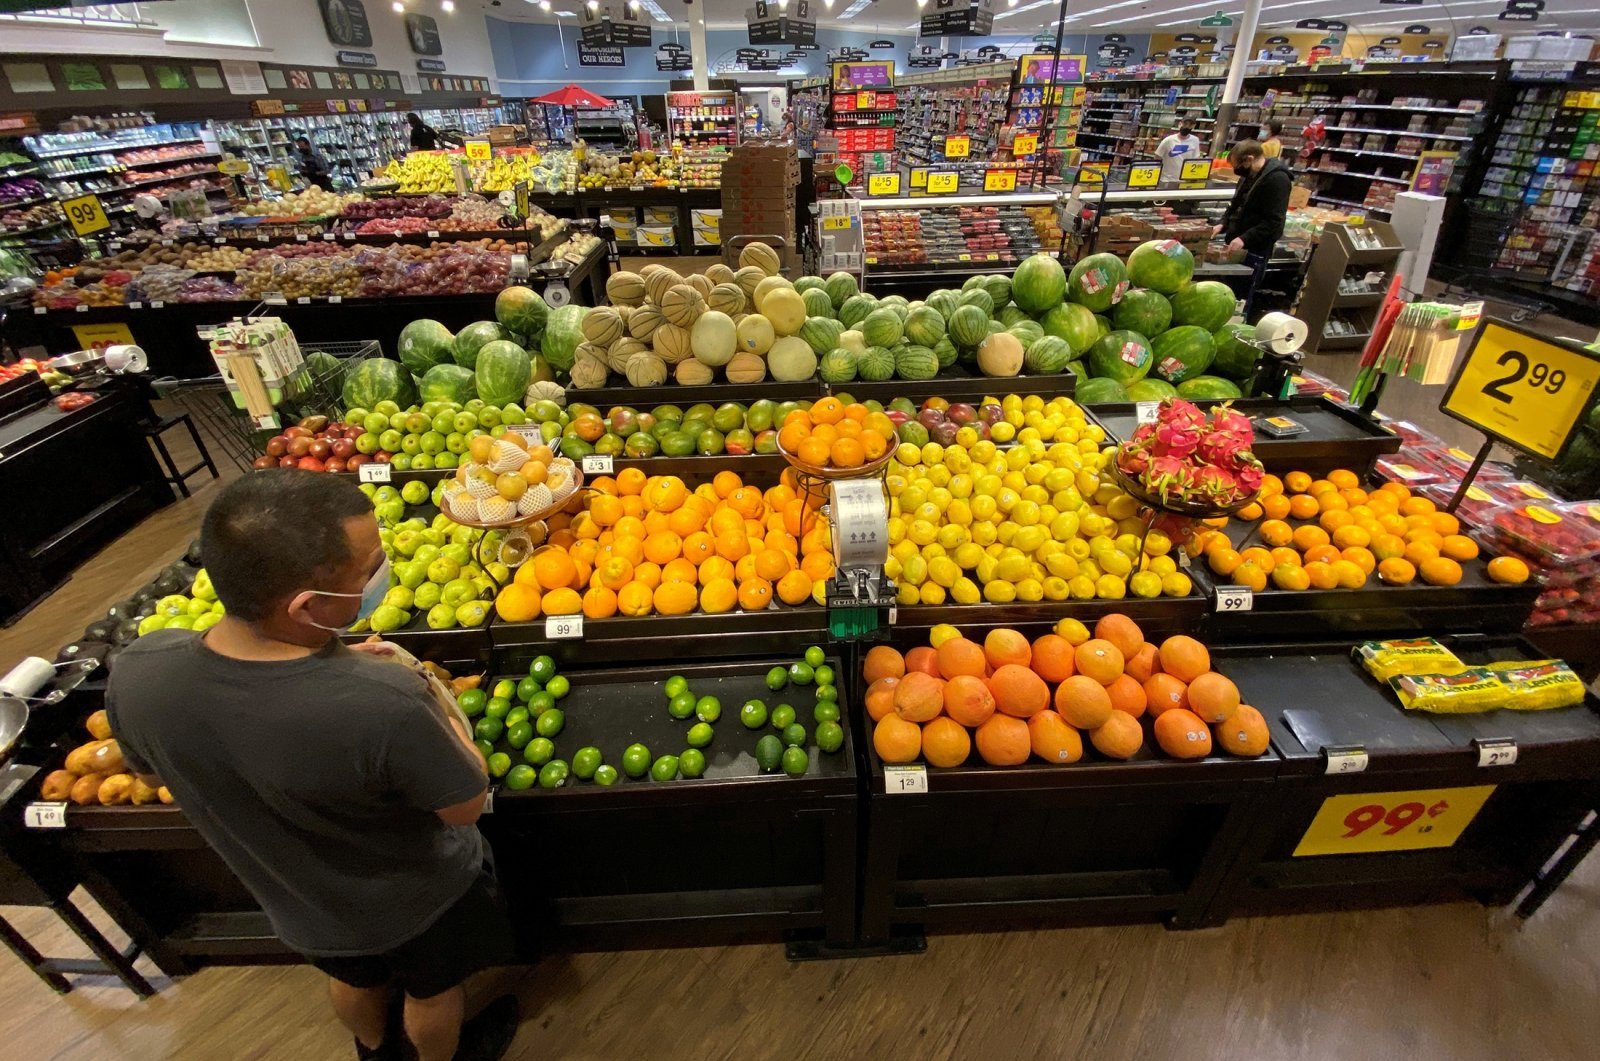 A shopper browses for fruits at a grocery store in Pasadena, California, U.S., June 11, 2020. (Reuters Photo)